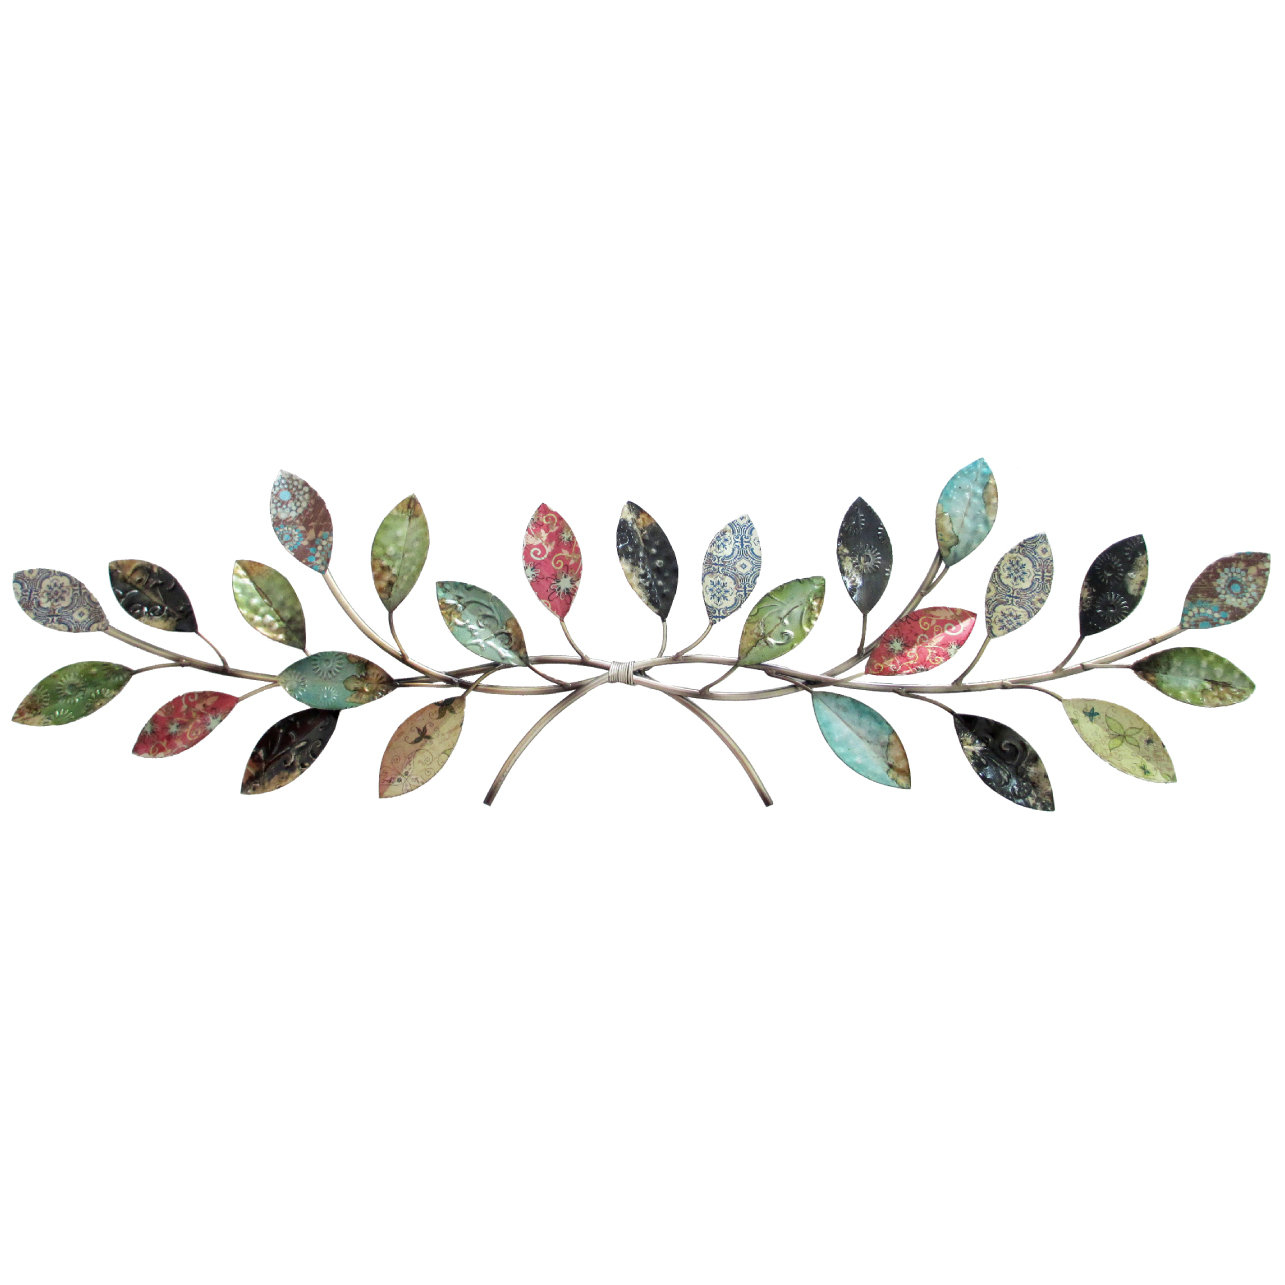 Leaves Metal Sculpture Wall Décor throughout Leaves Metal Sculpture Wall Decor (Image 21 of 30)